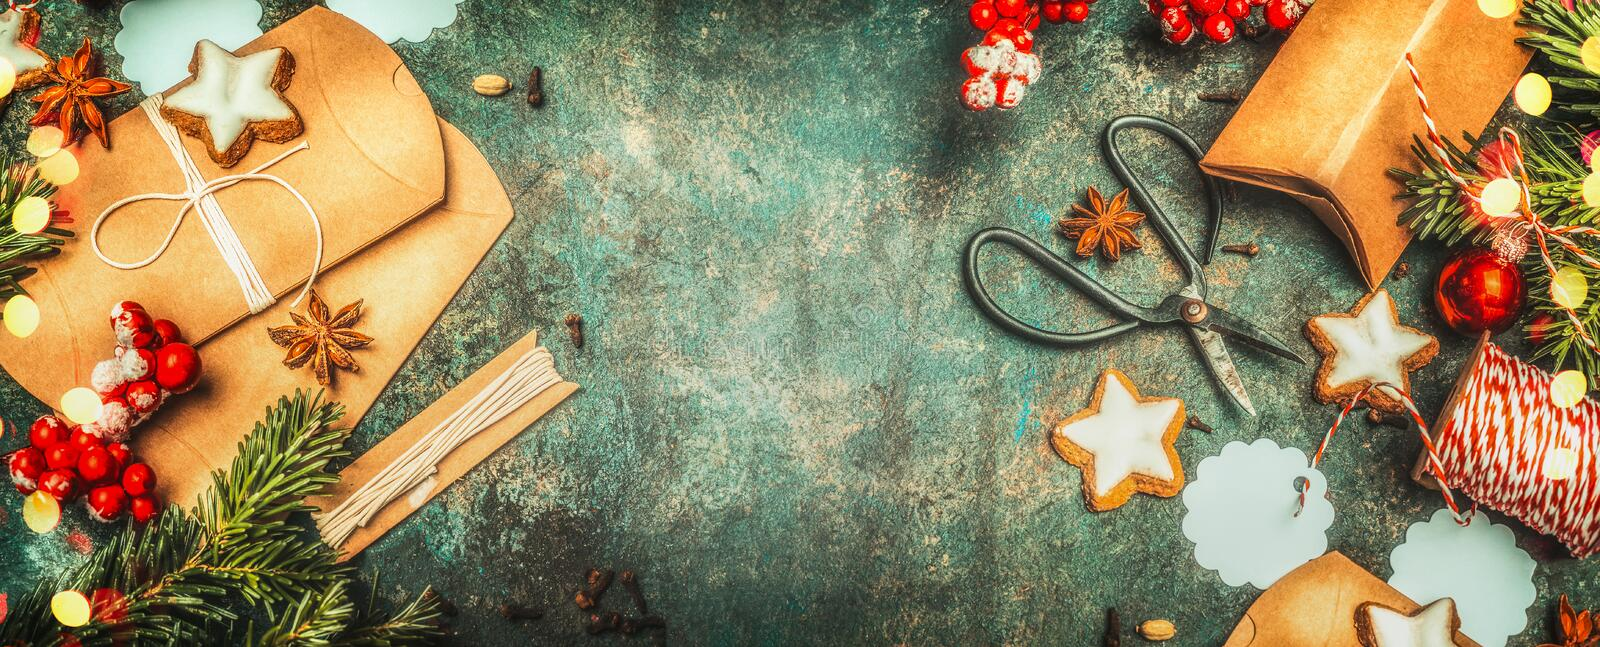 Christmas gifts wrapping with little cardboard boxes , shears, holiday cookies and festive decorations on vintage background, top stock photos